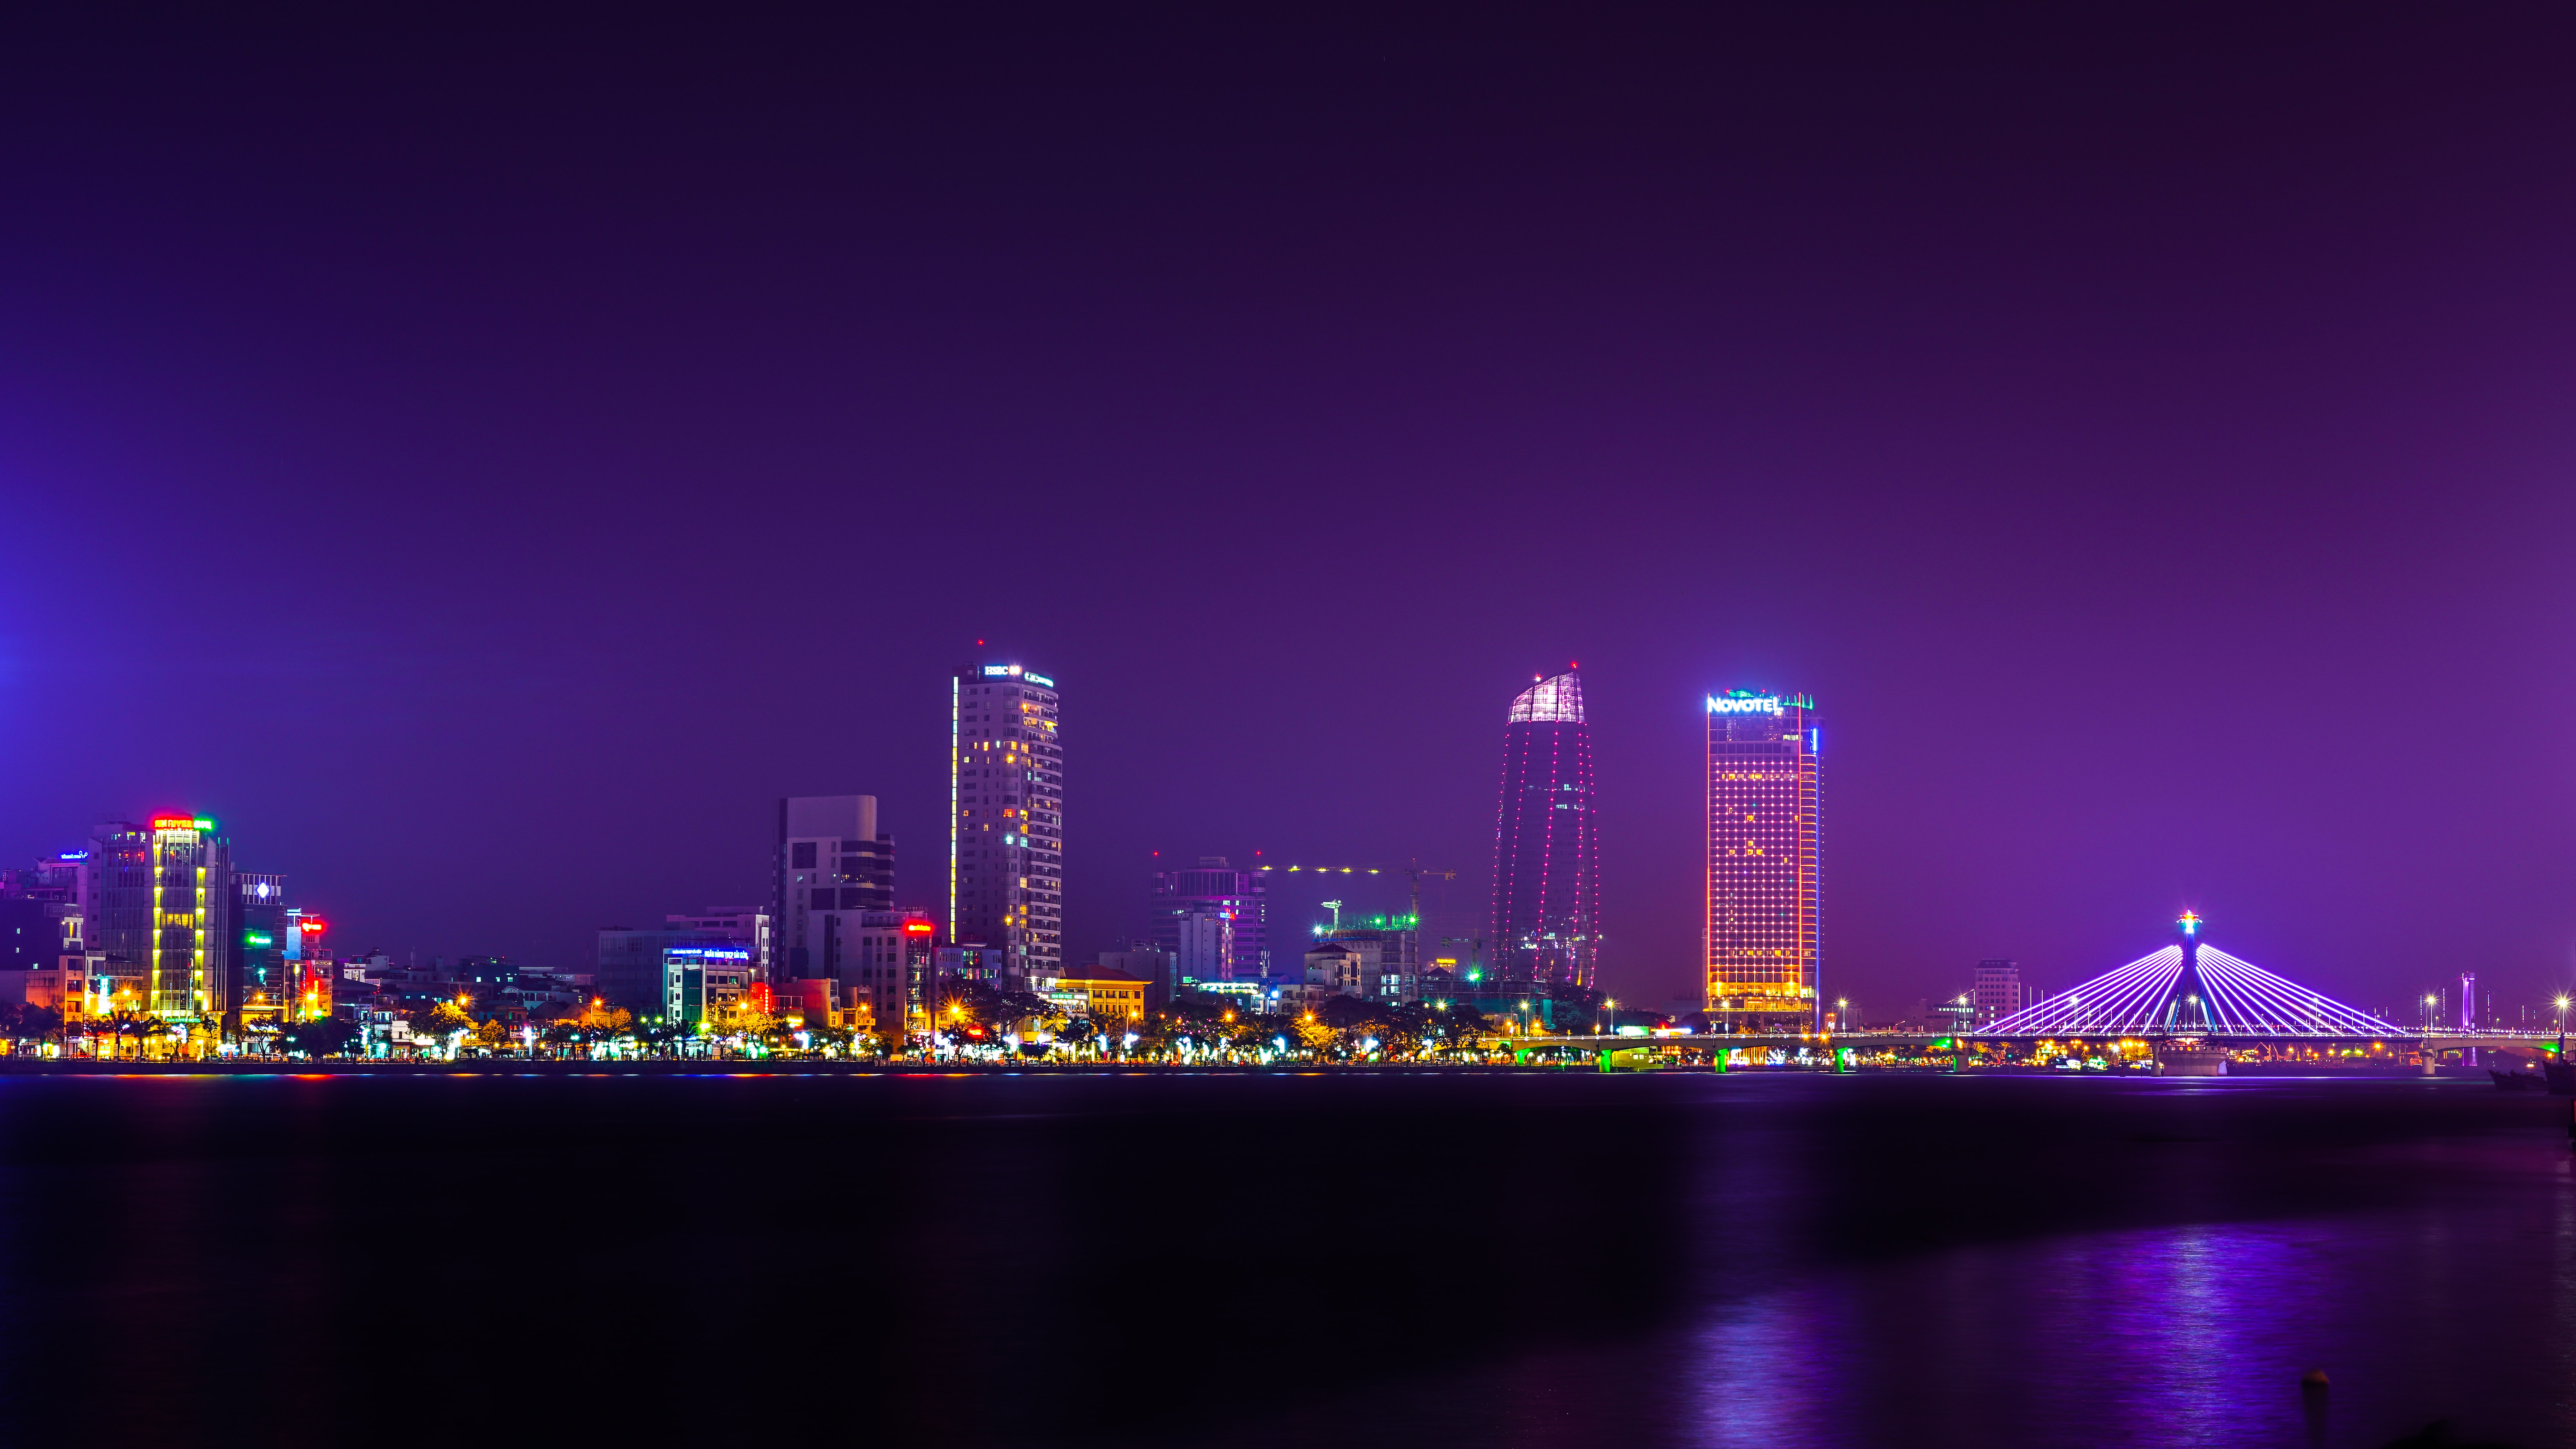 The bright skyline of Da Nang in Vietnam seen from the river at night